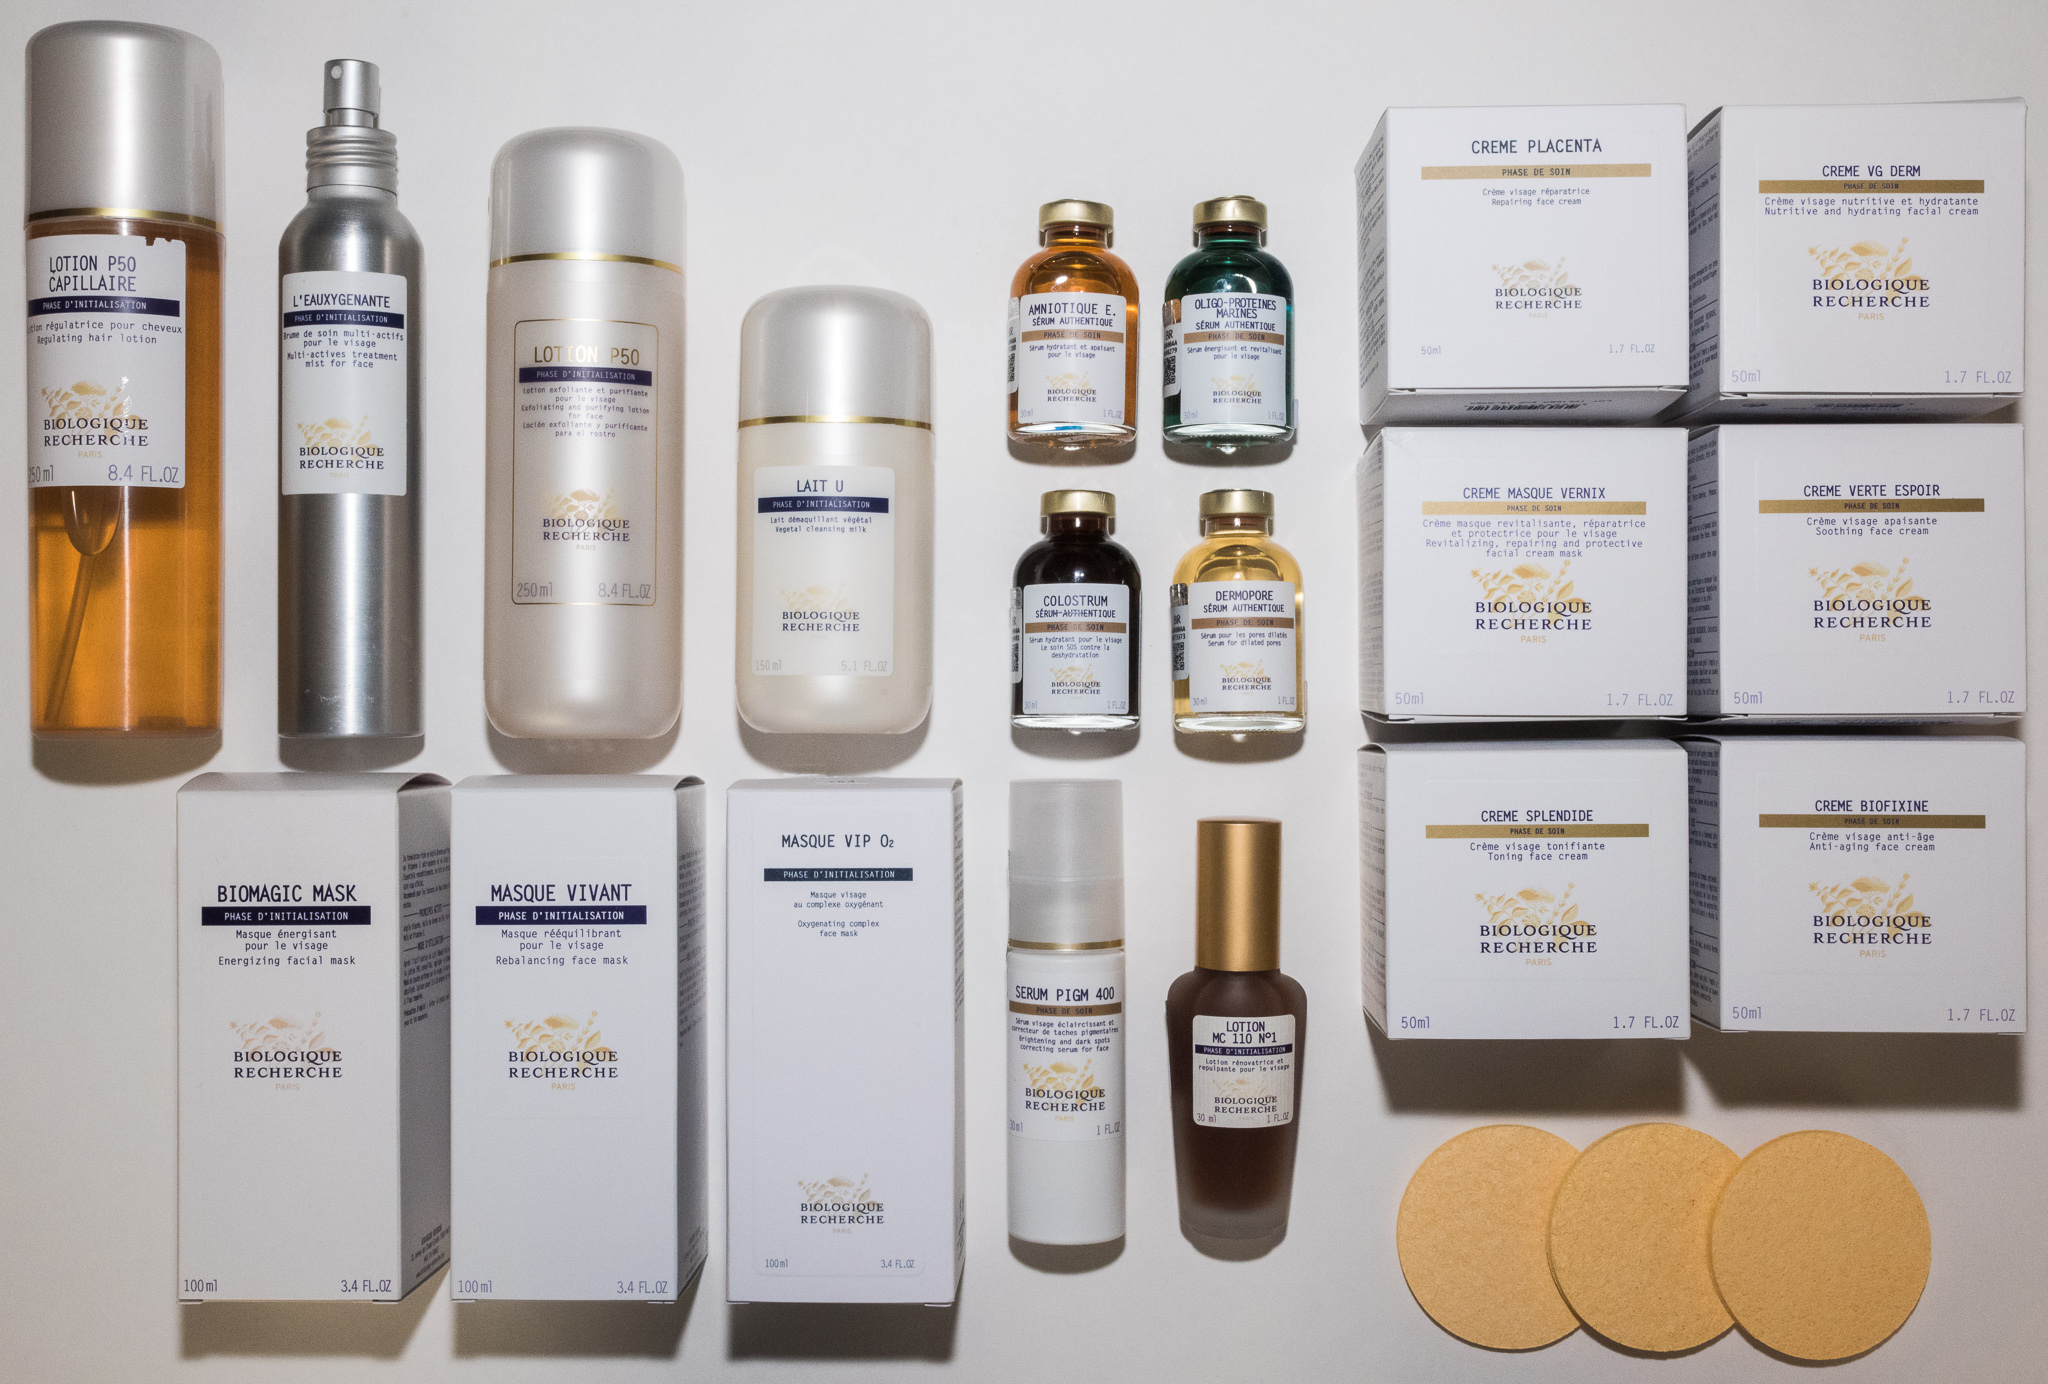 Proudly offering Biologique Recherche products and treatments -